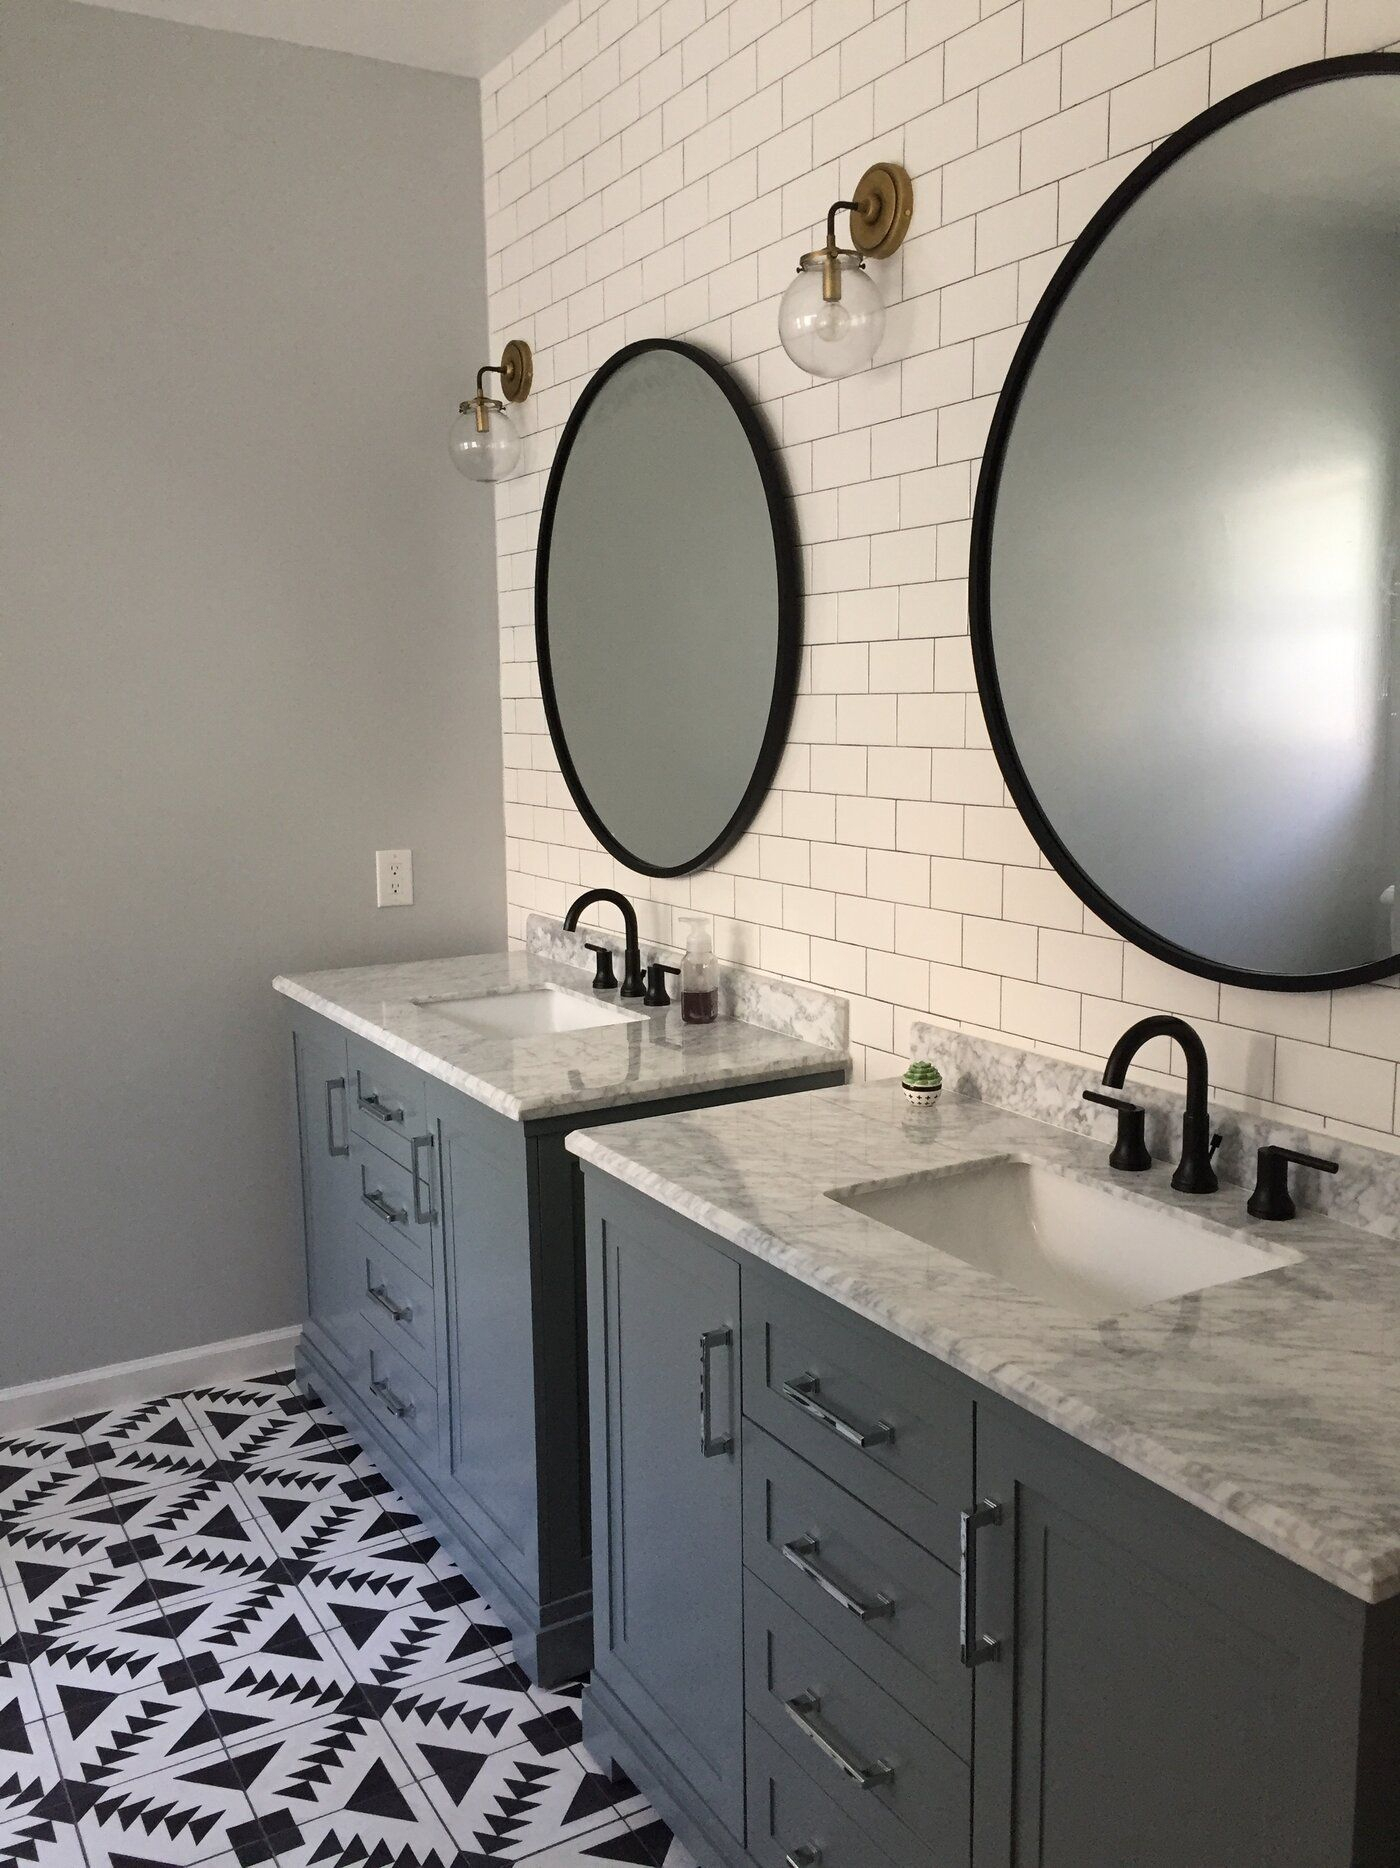 Hub Modern And Contemporary Accent Mirror In 2019 | Bathroom For Hub Modern And Contemporary Accent Mirrors (View 5 of 30)